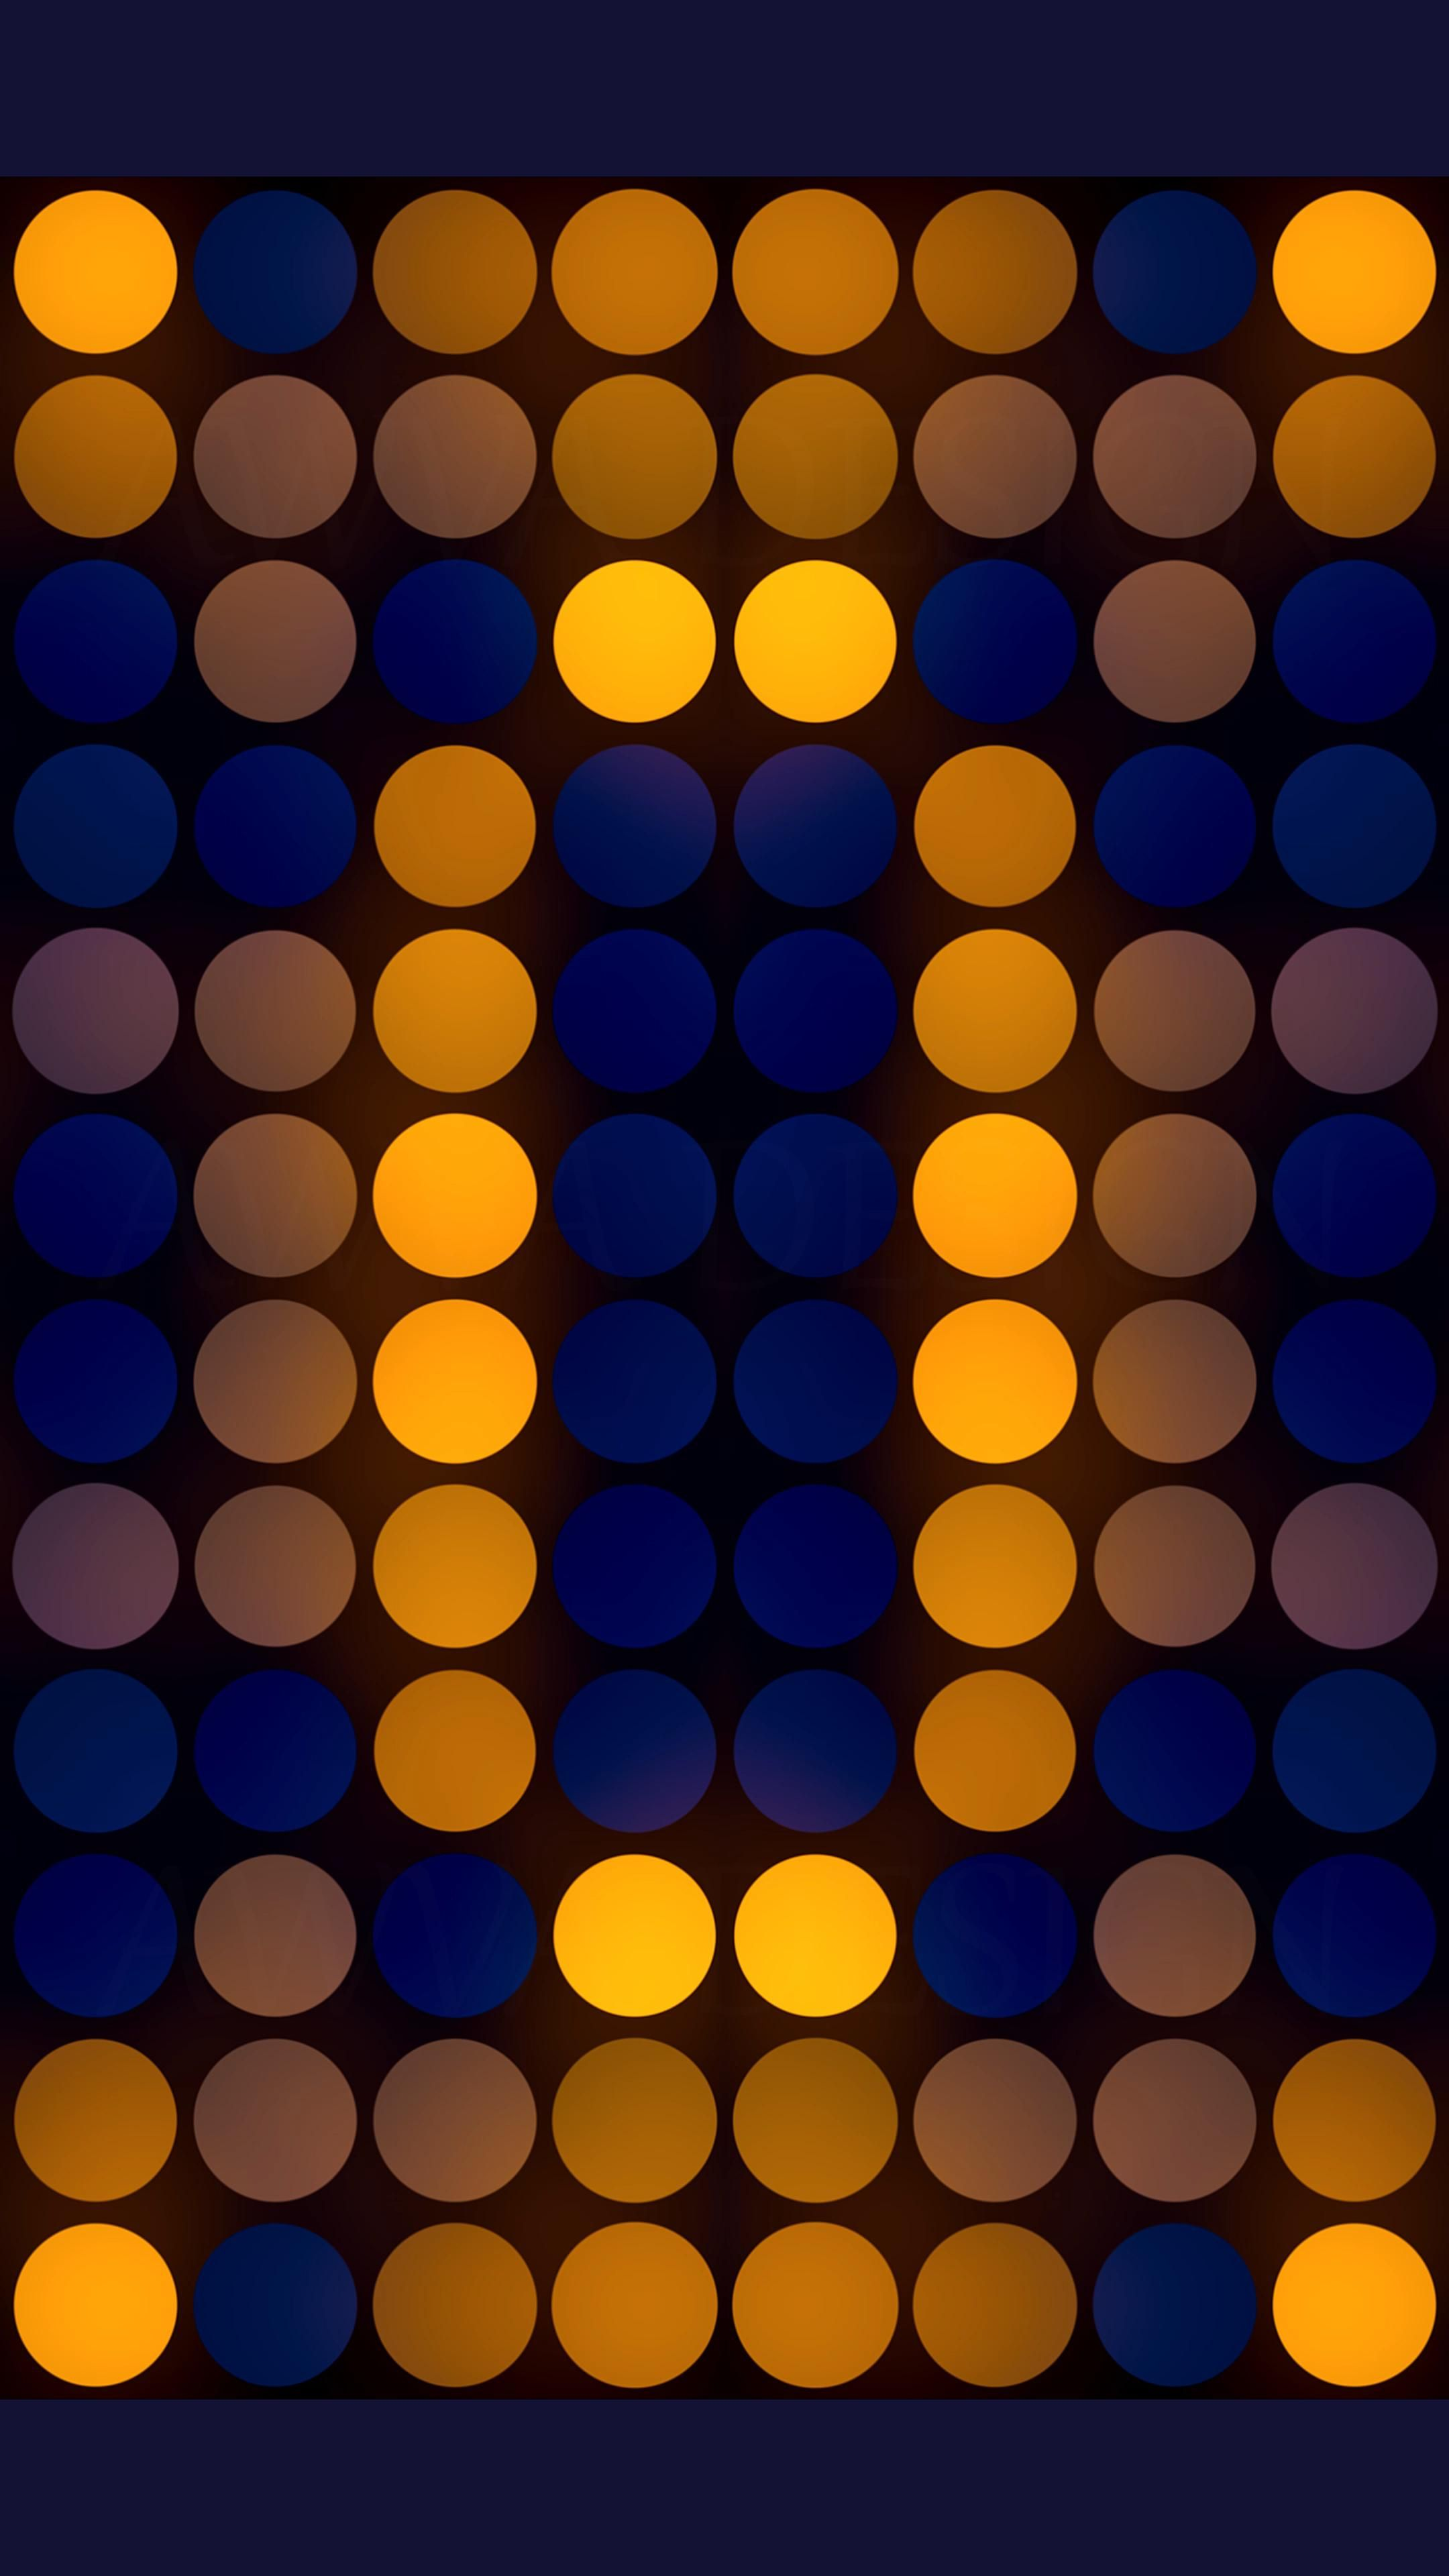 The bright purple-yellow mosaic of circles on a dark blue background.